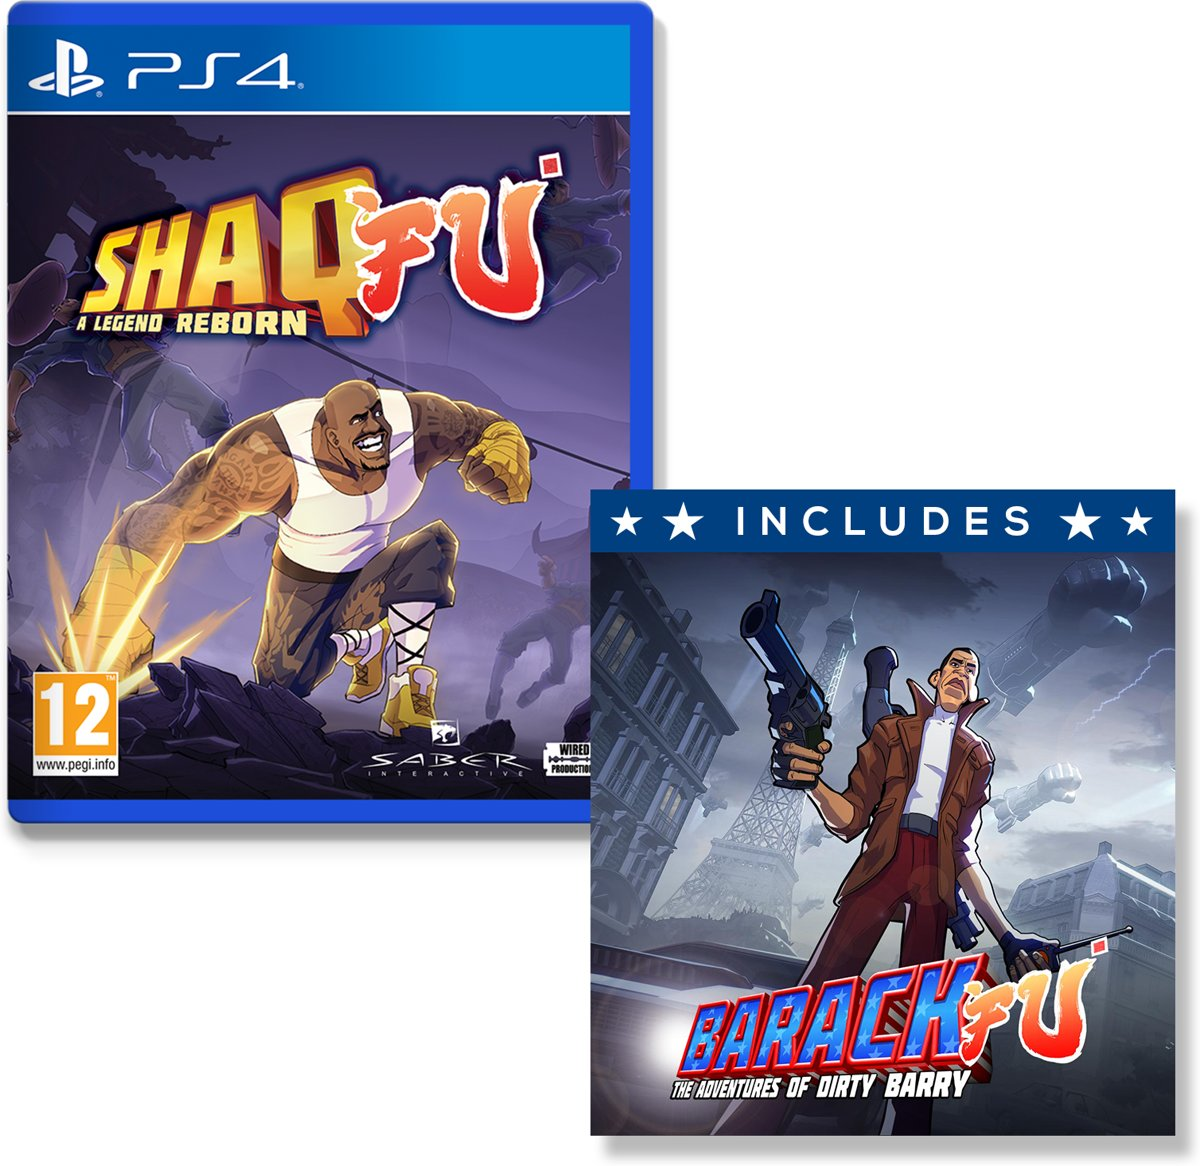 Shaq Fu - A Legend Reborn PlayStation 4